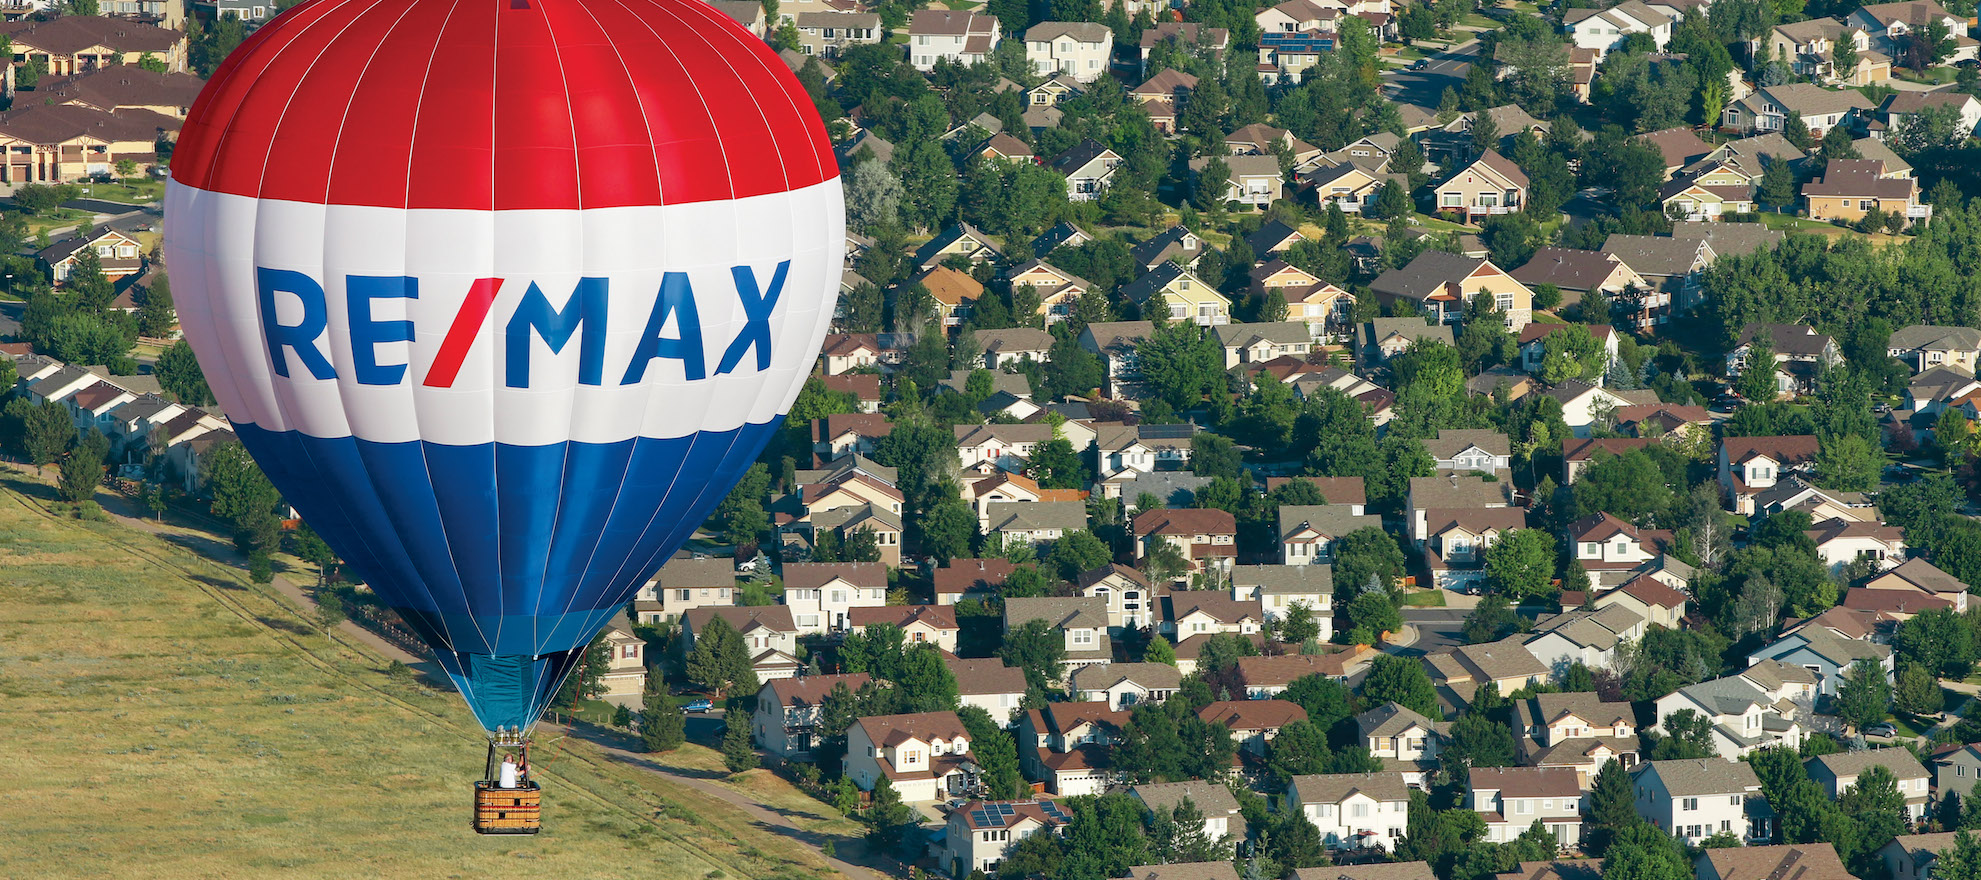 RE/MAX reorganizes its franchise empire